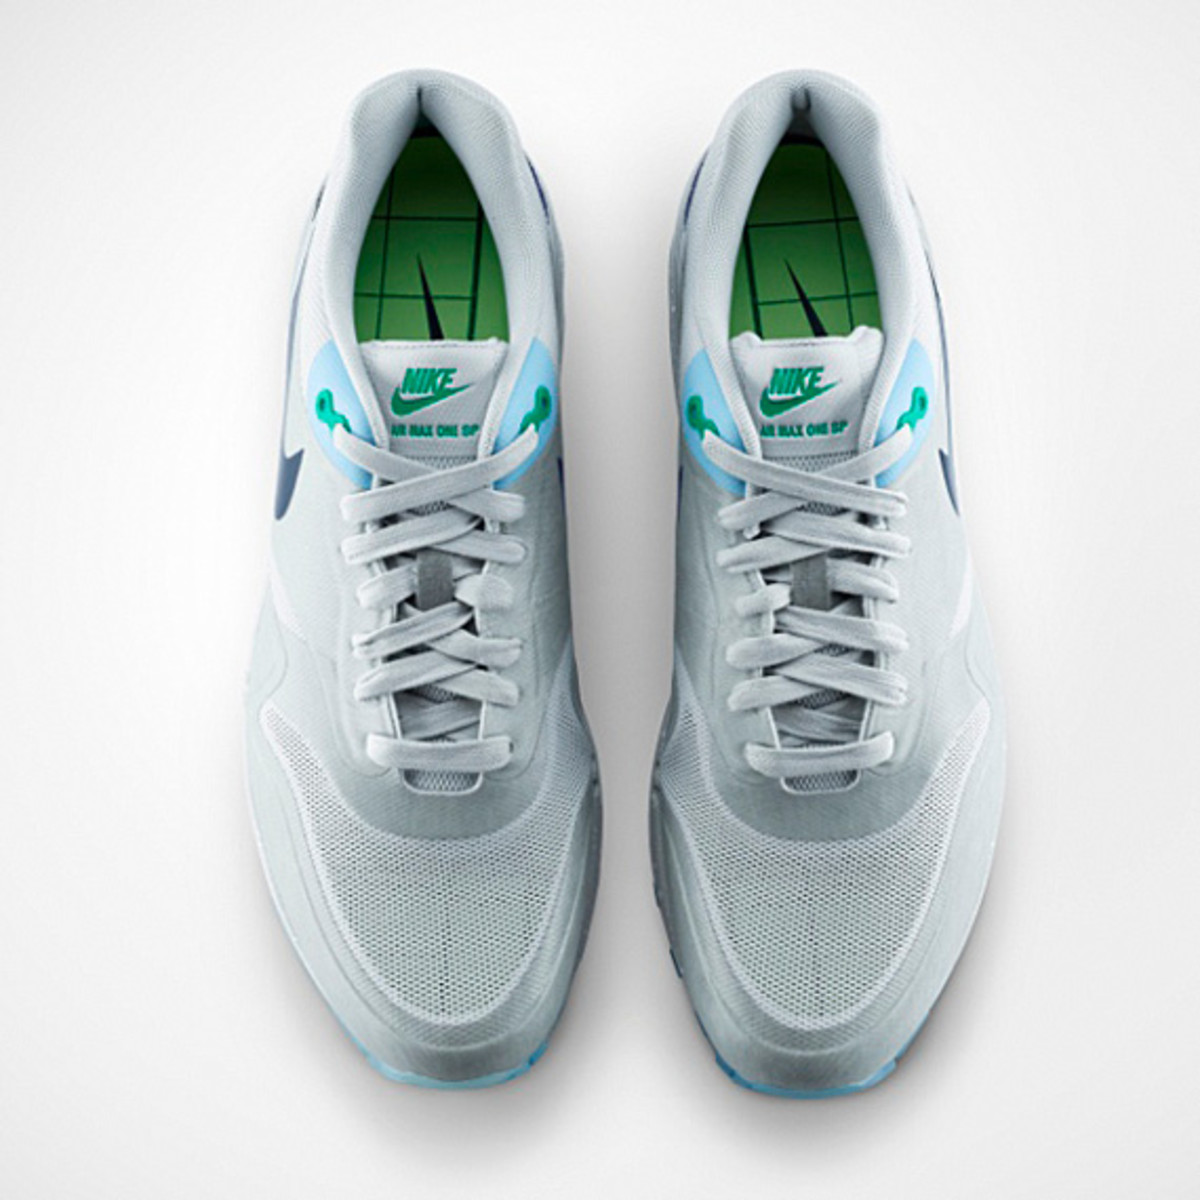 clot-x-nike-air-max-1-sp-detailed-look-02